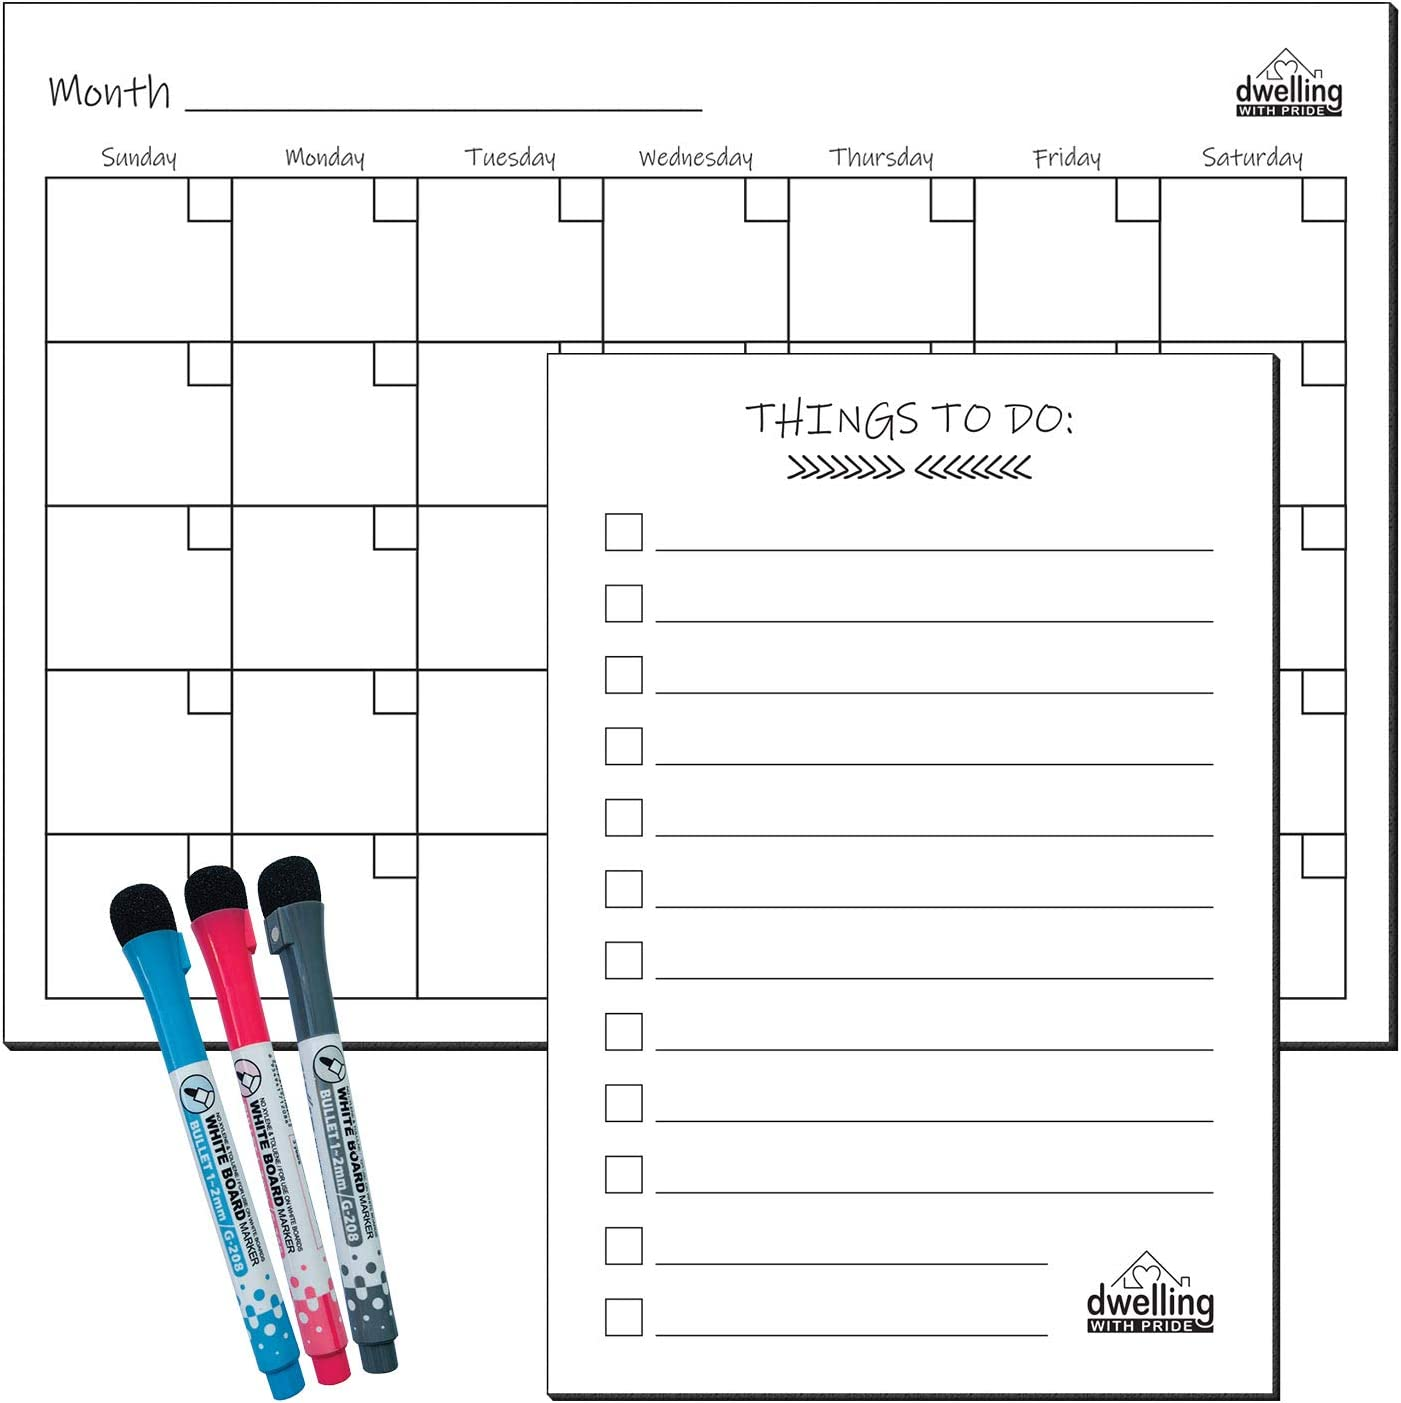 Magnetic Whiteboard for Refrigerator - Magnetic Dry Erase Board - Fridge Magnet Whiteboard - with 3 Magnetic Pens and to-Do List (White, Calendar)